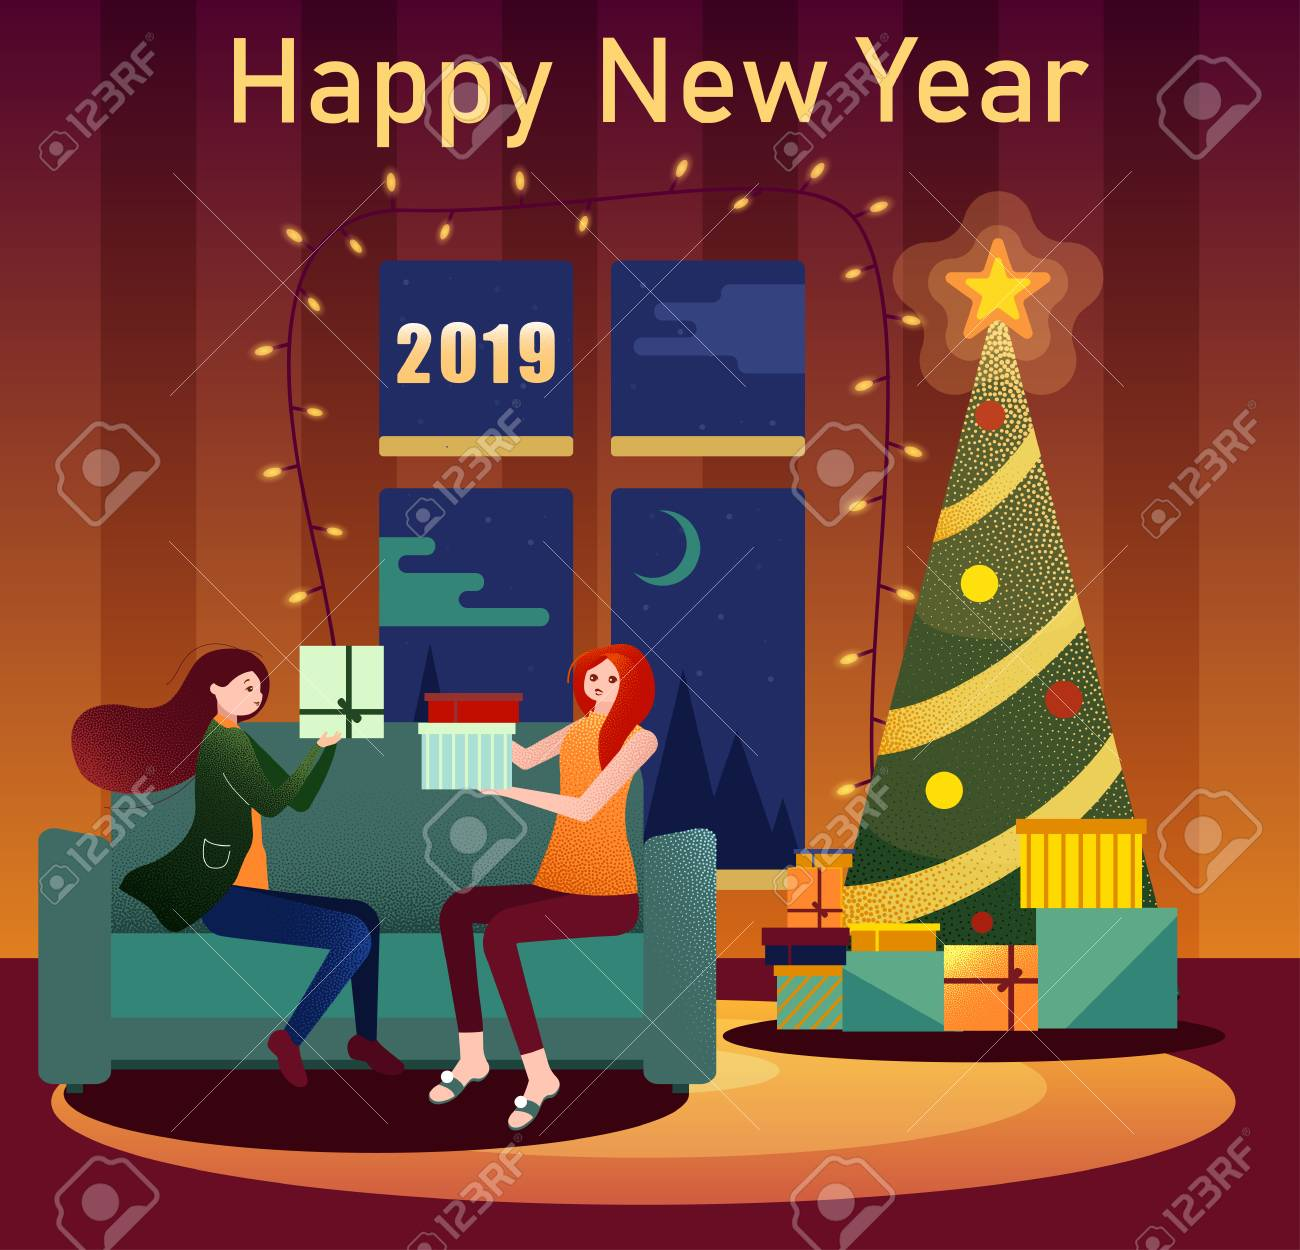 Christmas Gifts For Girls 2019.Happy New Year 2019 Card With Christmas Tree And Girls With Gifts